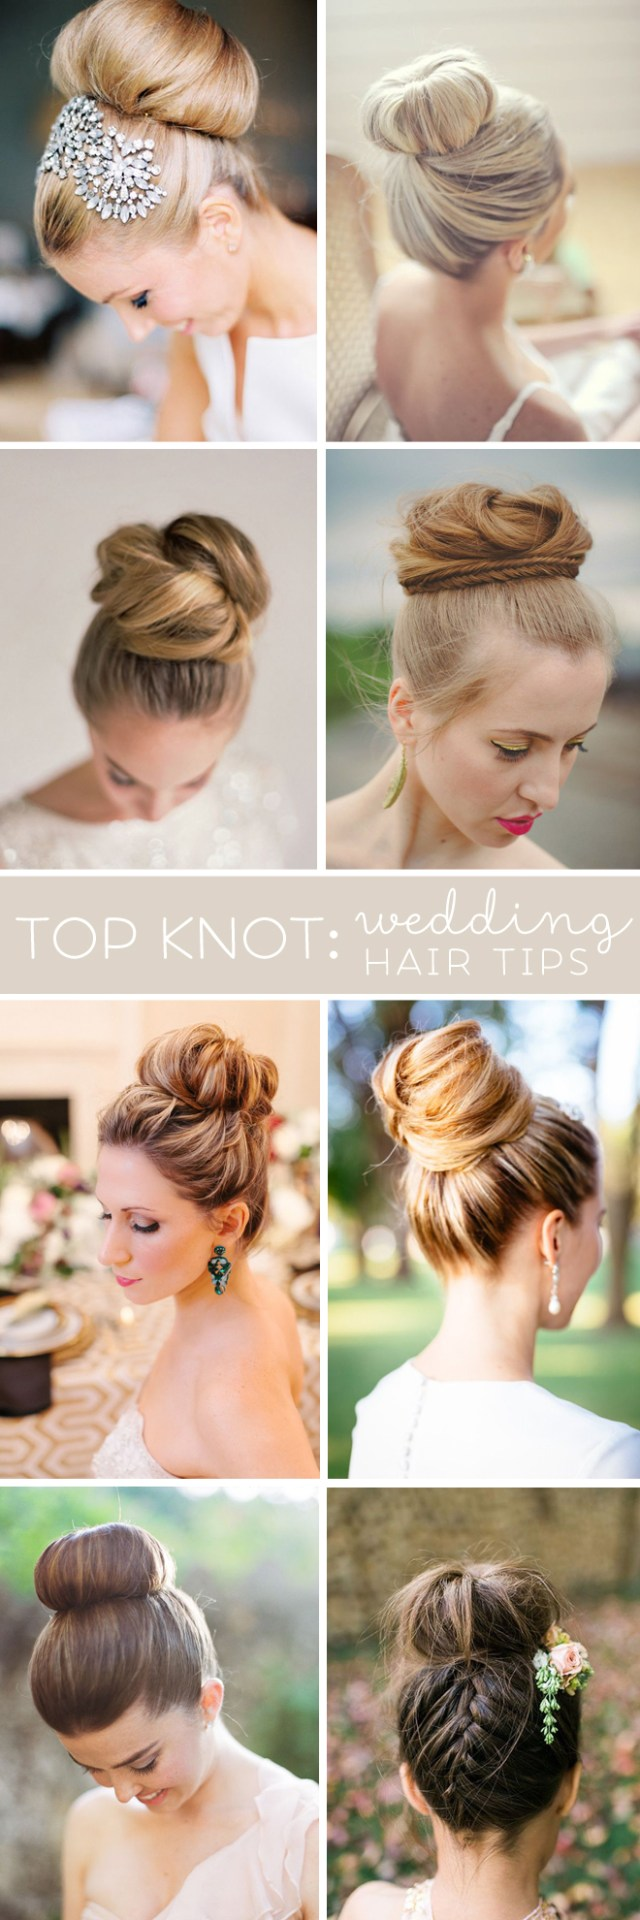 """awesome wedding hair tips for wearing a """"top knot"""" bun"""